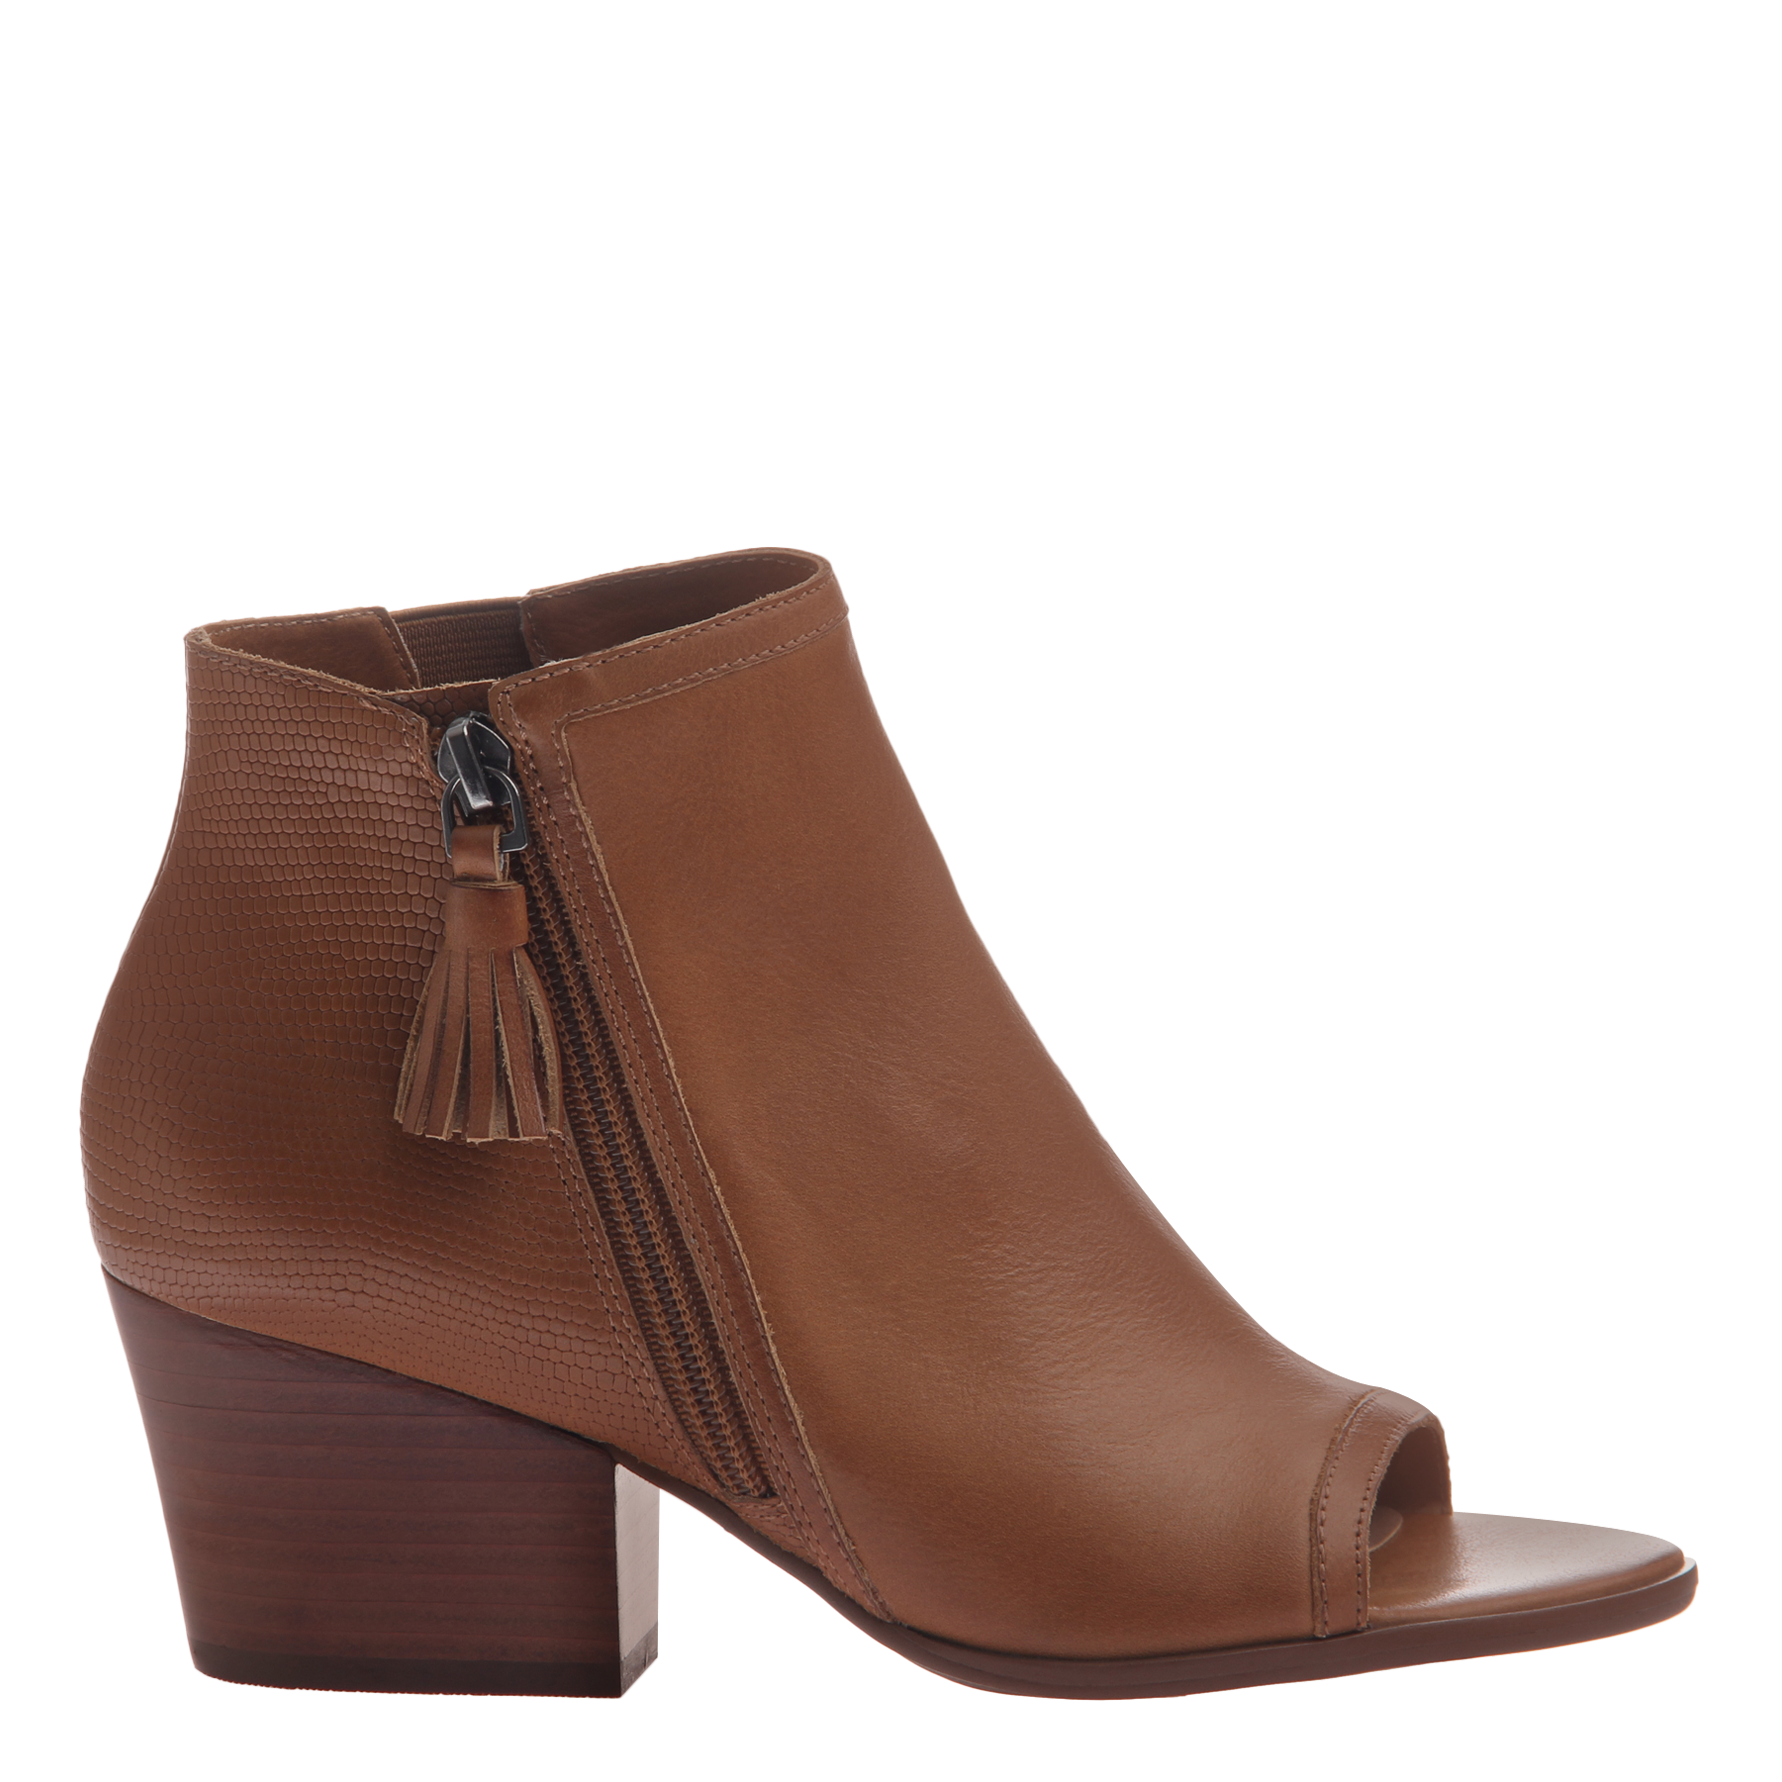 Nicole womens ankle boot Ania in butterscotch side view